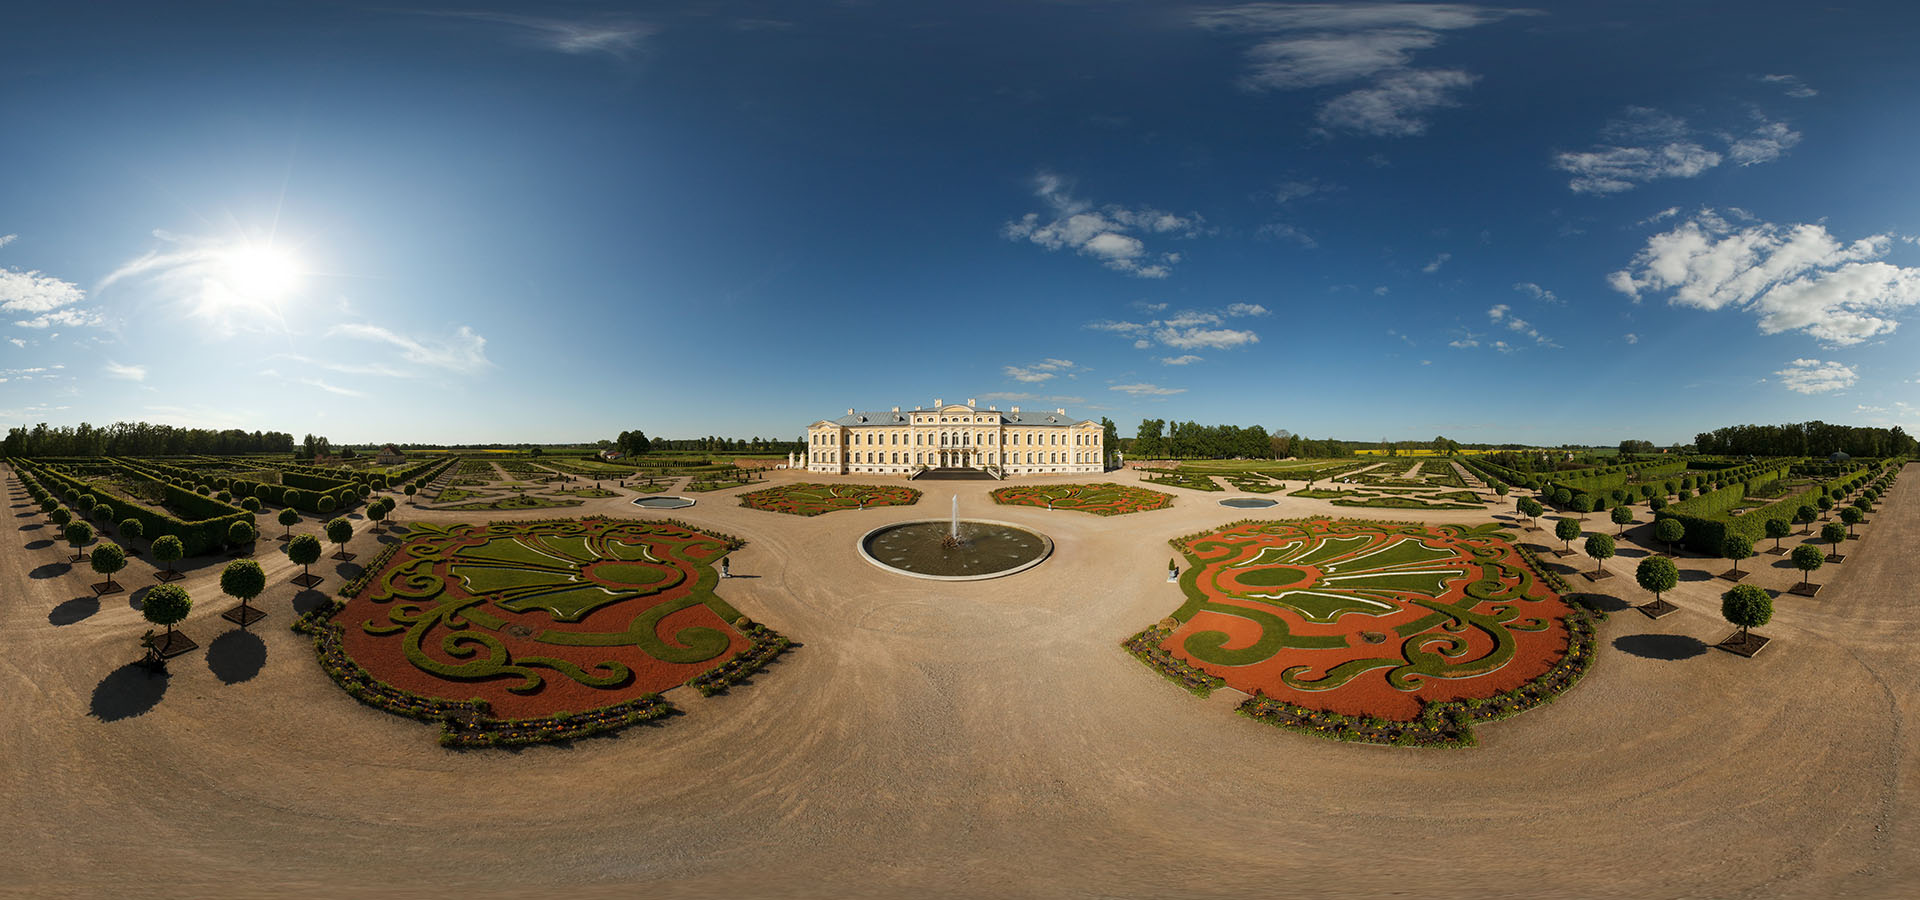 Rundale_Palace_Baroque_Historical_360_degree_Virtual_Tours_OCEAN.LV_